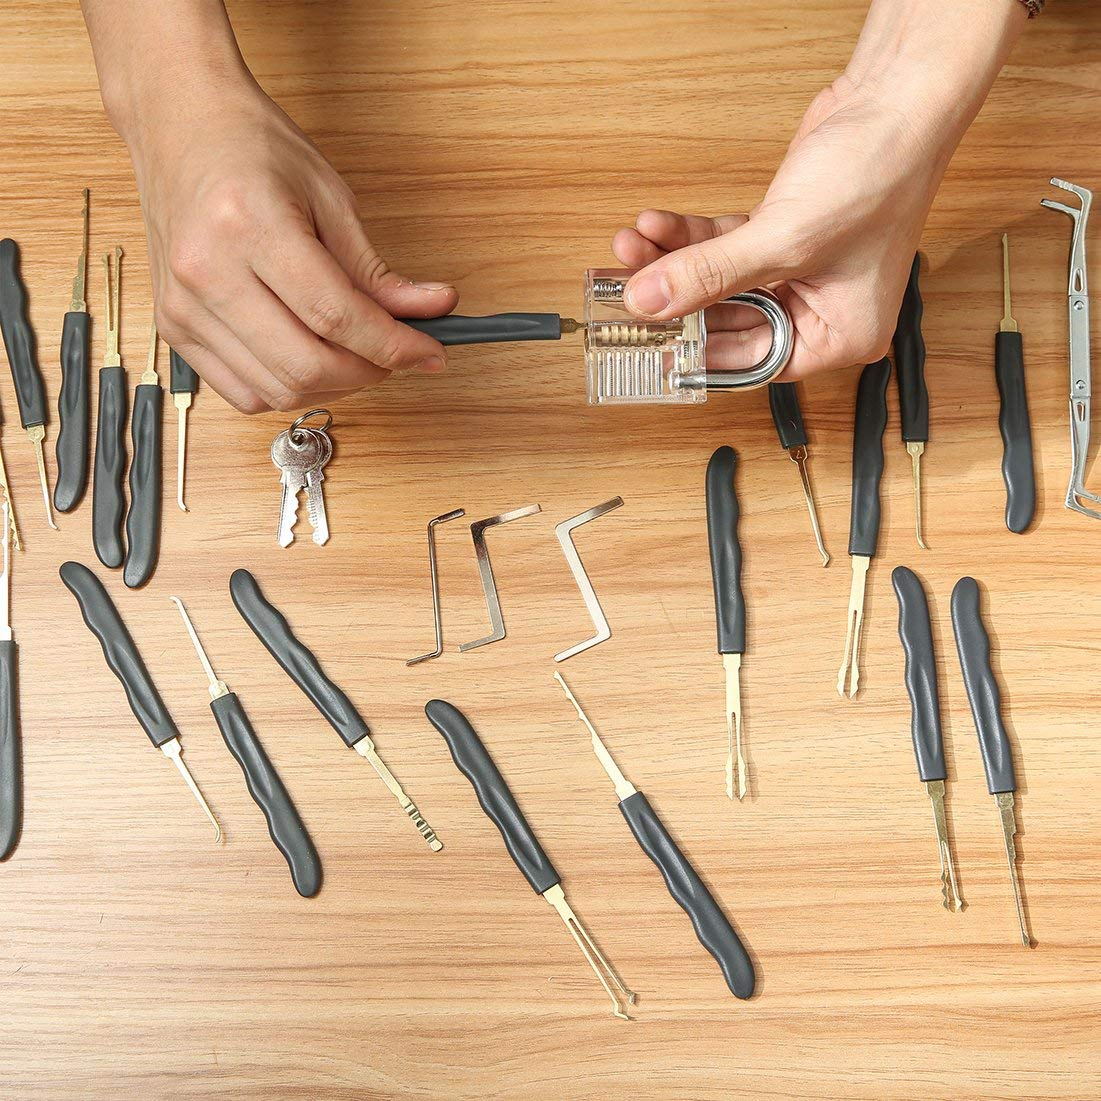 wandor Multi-Tool Set Versatile Use Training Kit for Beginners and Professionals 24-Piece Set